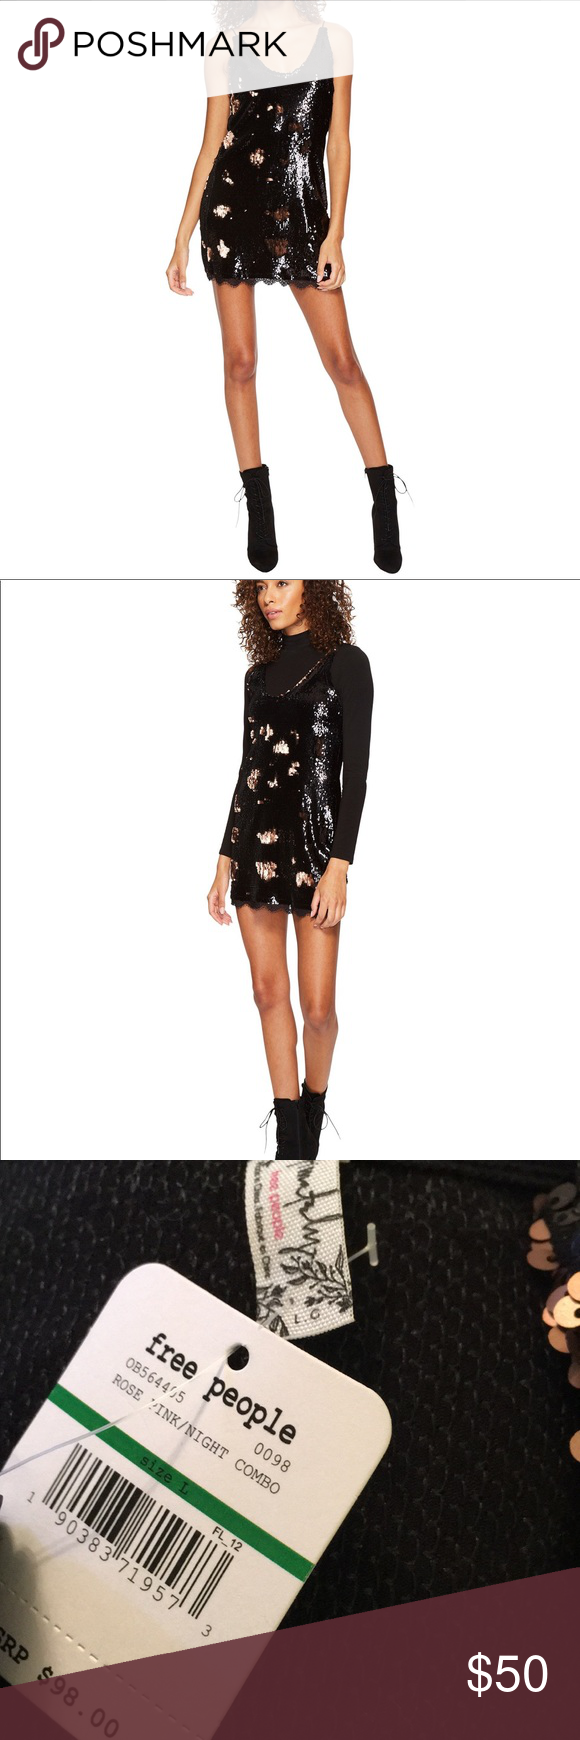 e3fd8f458dd38 Free People Seeing Double Sequin Slip Dress Base layer in second picture  not included. Shimmer and shine all night in this Free People™ Seeing Double  Sequin ...